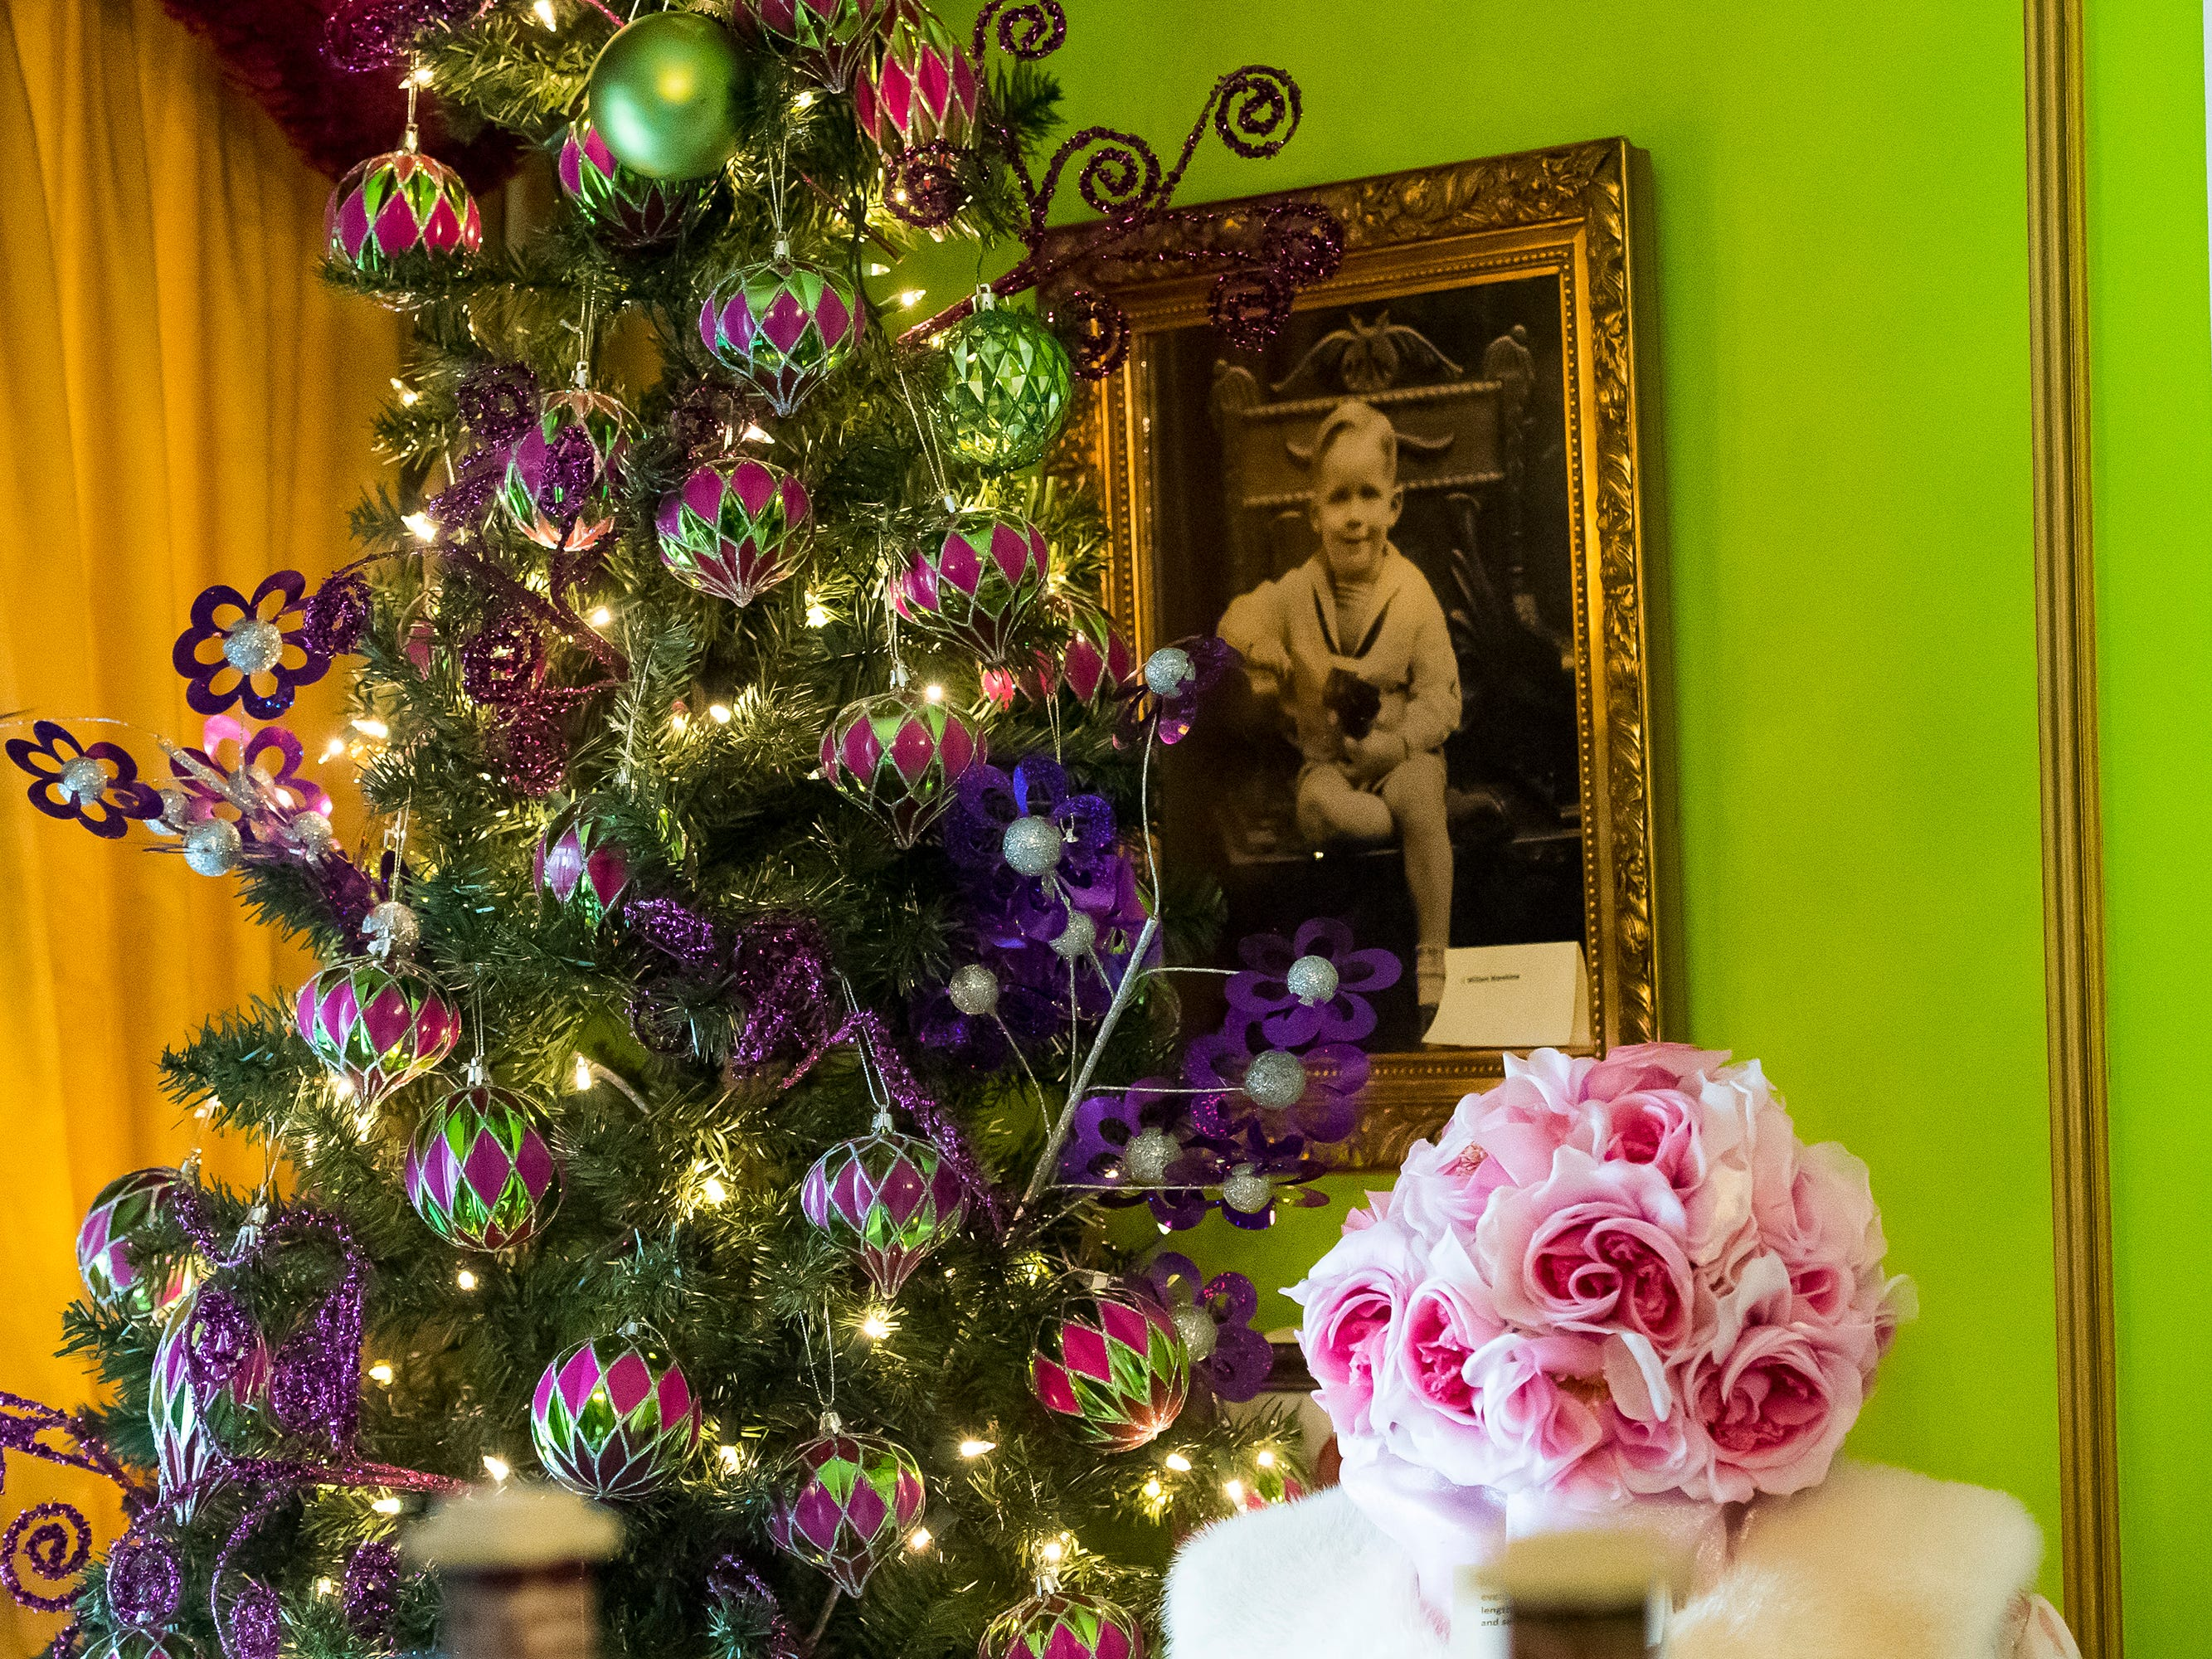 The South Western High School Key Club decorated this tree in the Warehime room at the Warehime-Myers Mansion in Hanover. A portrait of Bill Warehime as a child hangs on the wall behind the tree.